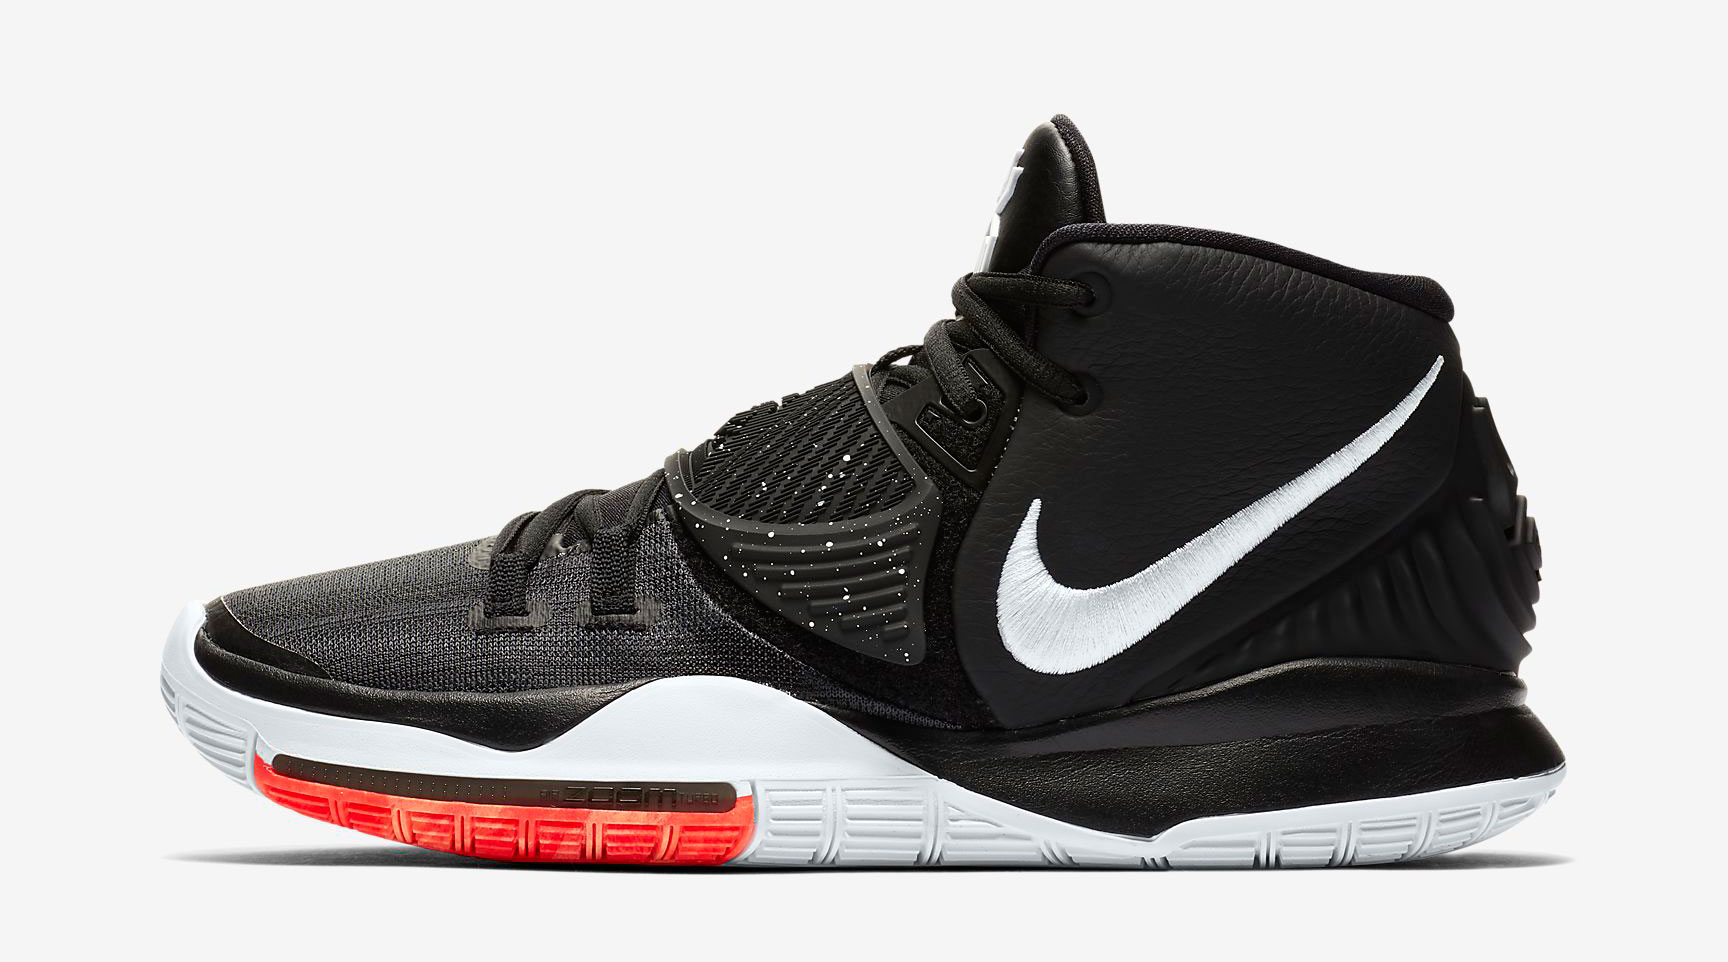 nike-kyrie-6-jet-black-white-release-date